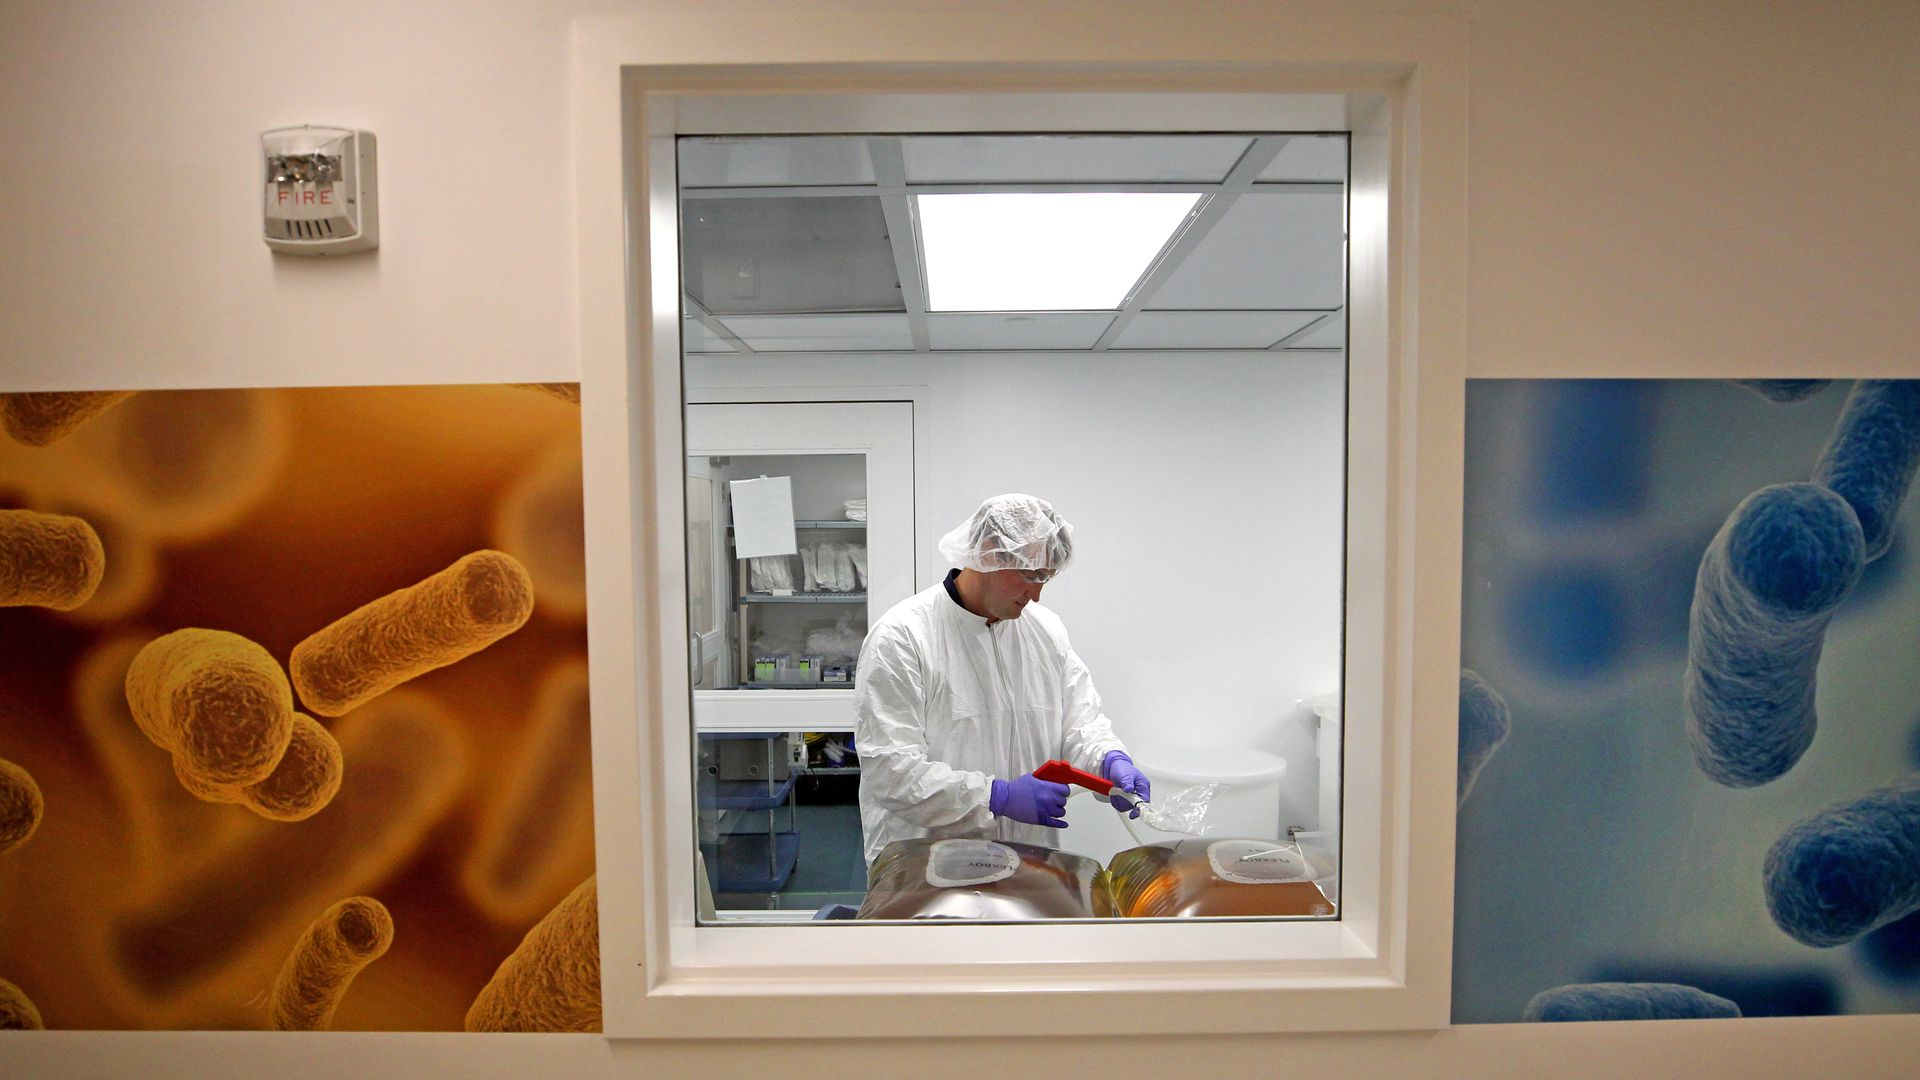 A technician in a pharmaceutical manufacturing facility